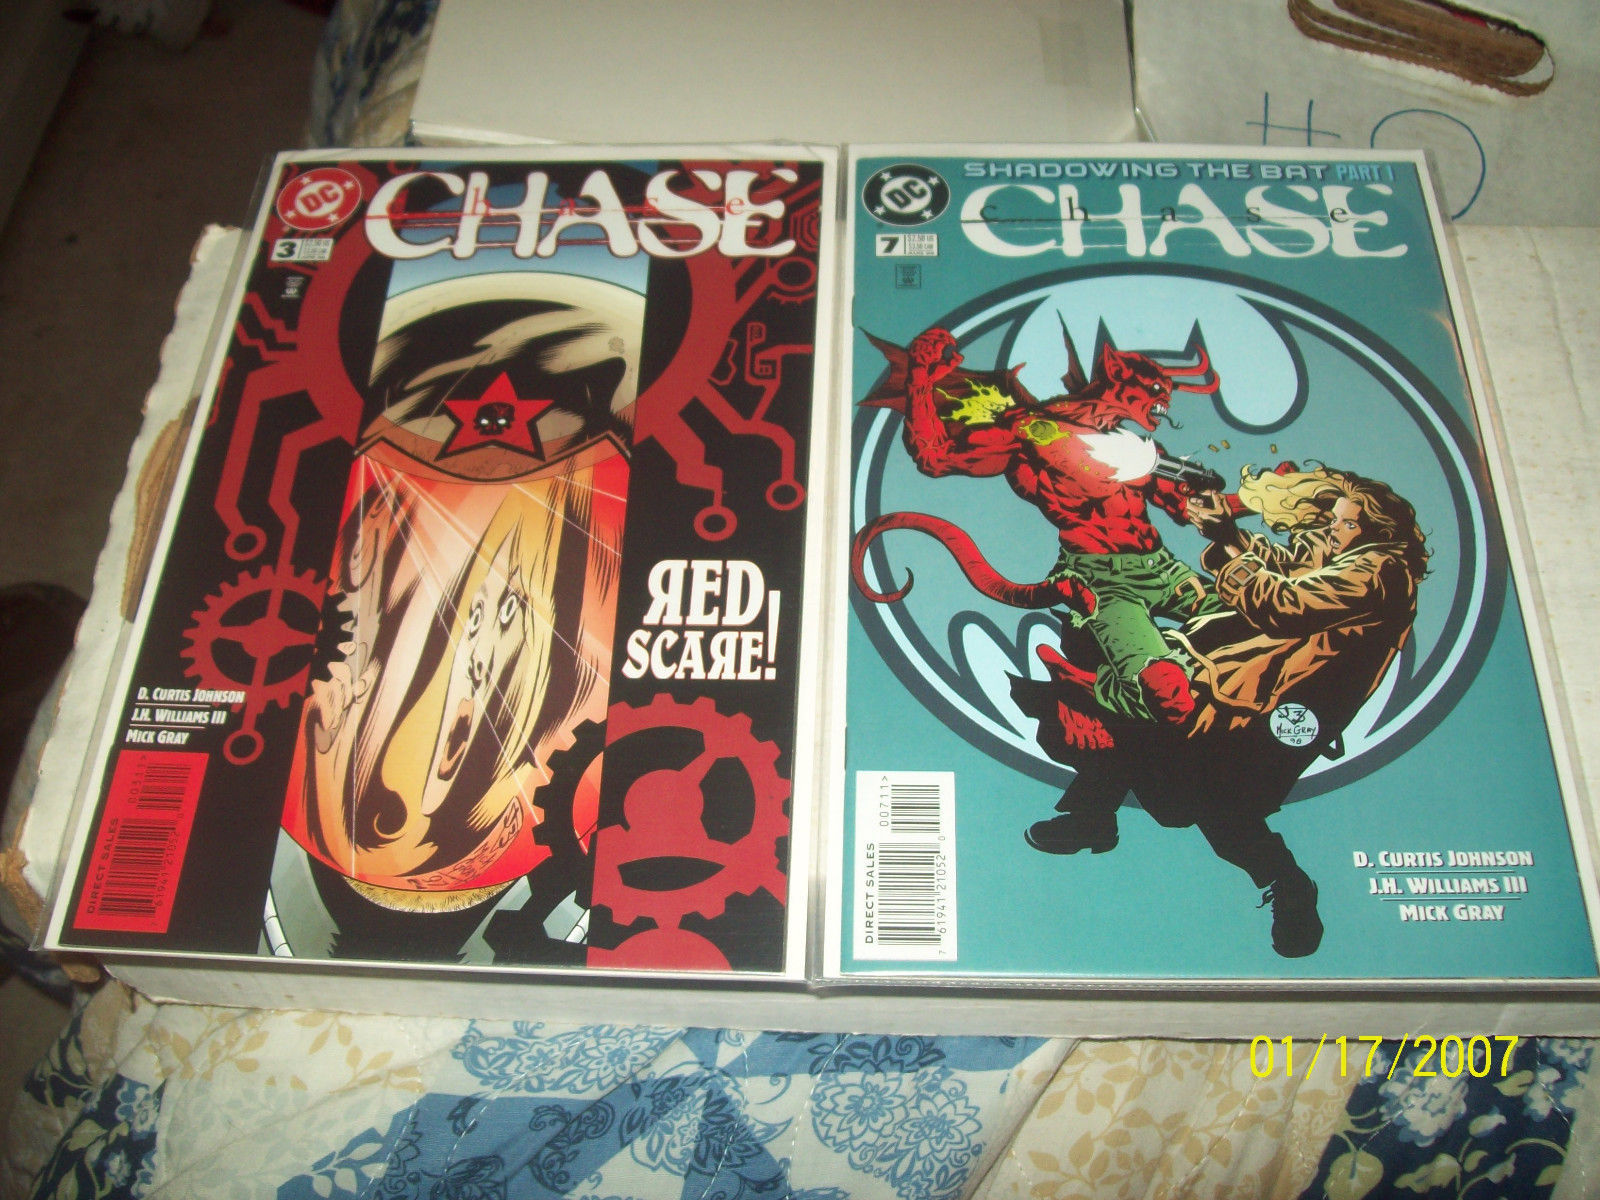 CHASE 1, 2, 3, 7, 8, 9,